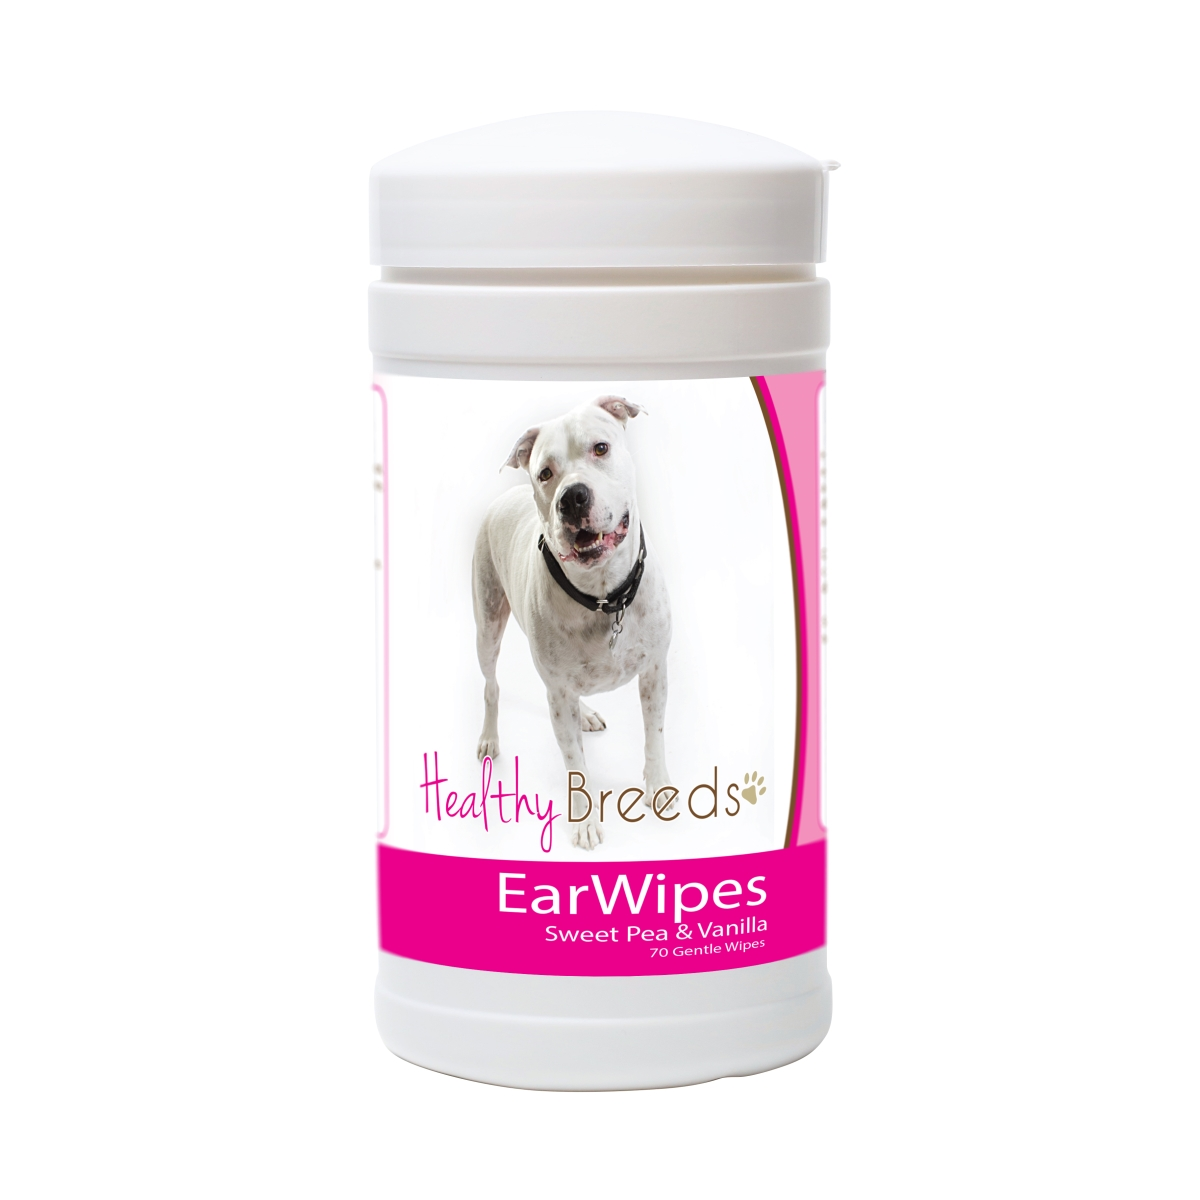 Healthy Breeds 840235180425 Pit Bull Ear Wipes - 70 Count